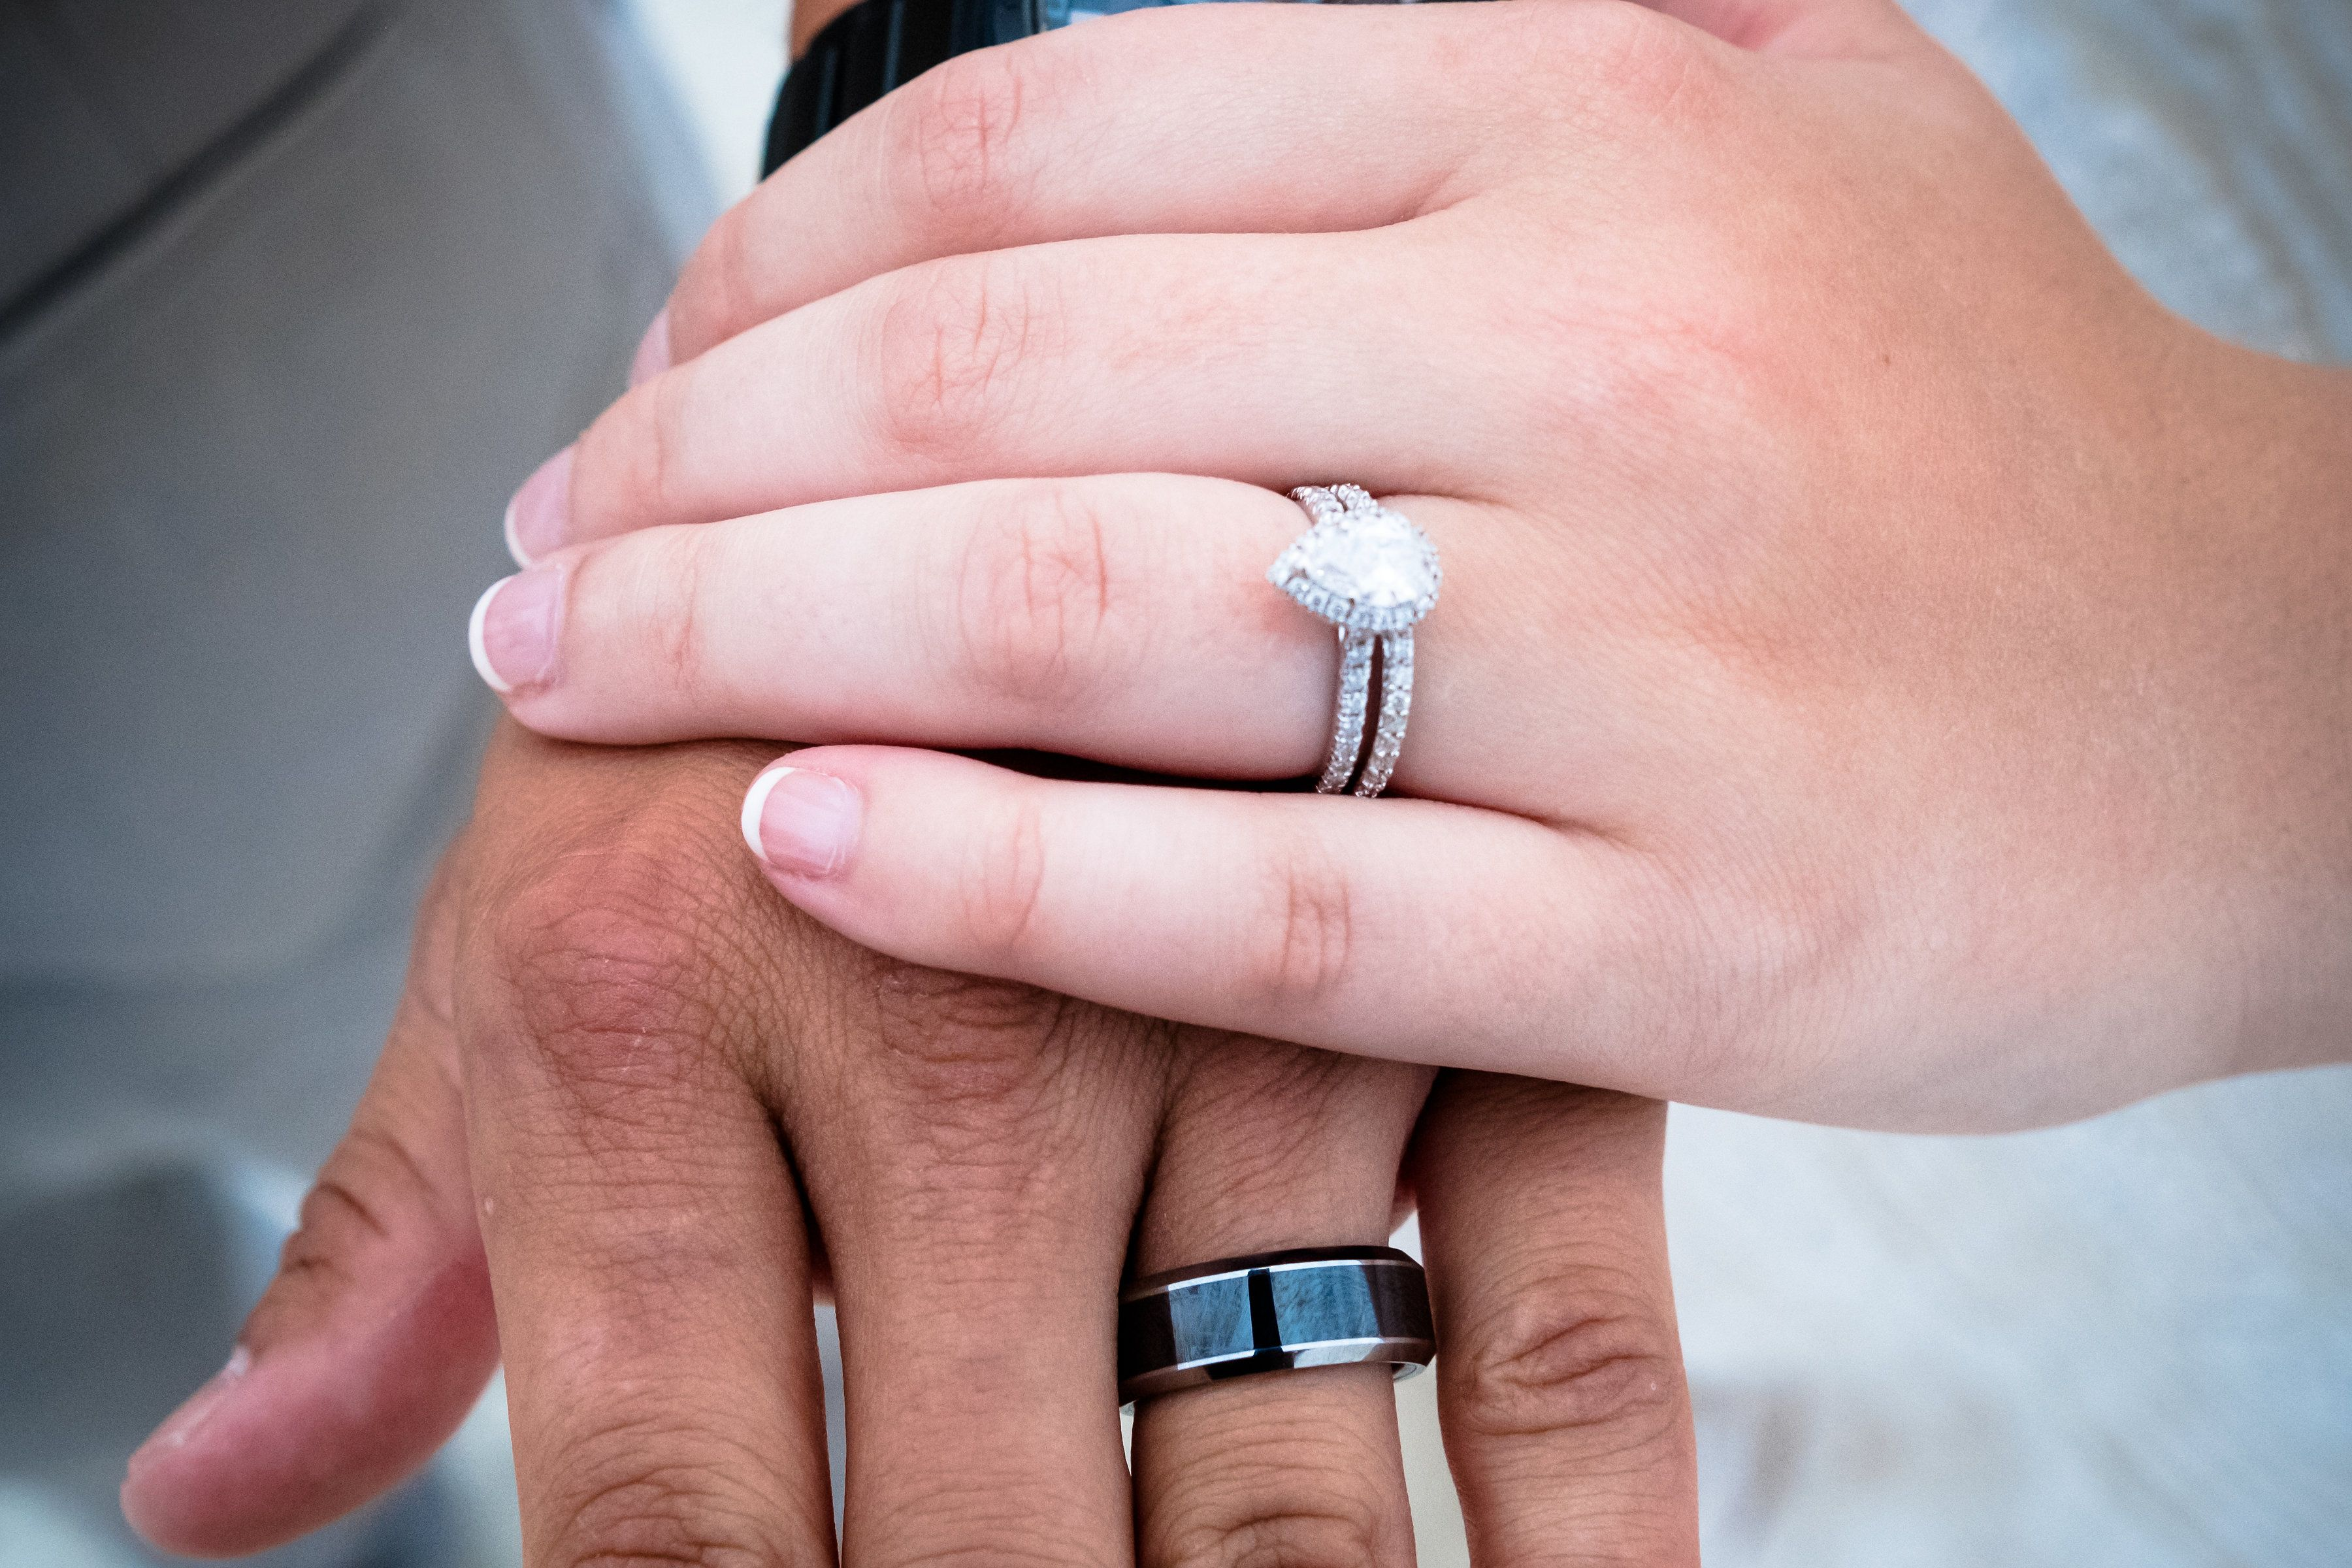 his and her wedding rings shot | Put a Ring on It | Pinterest